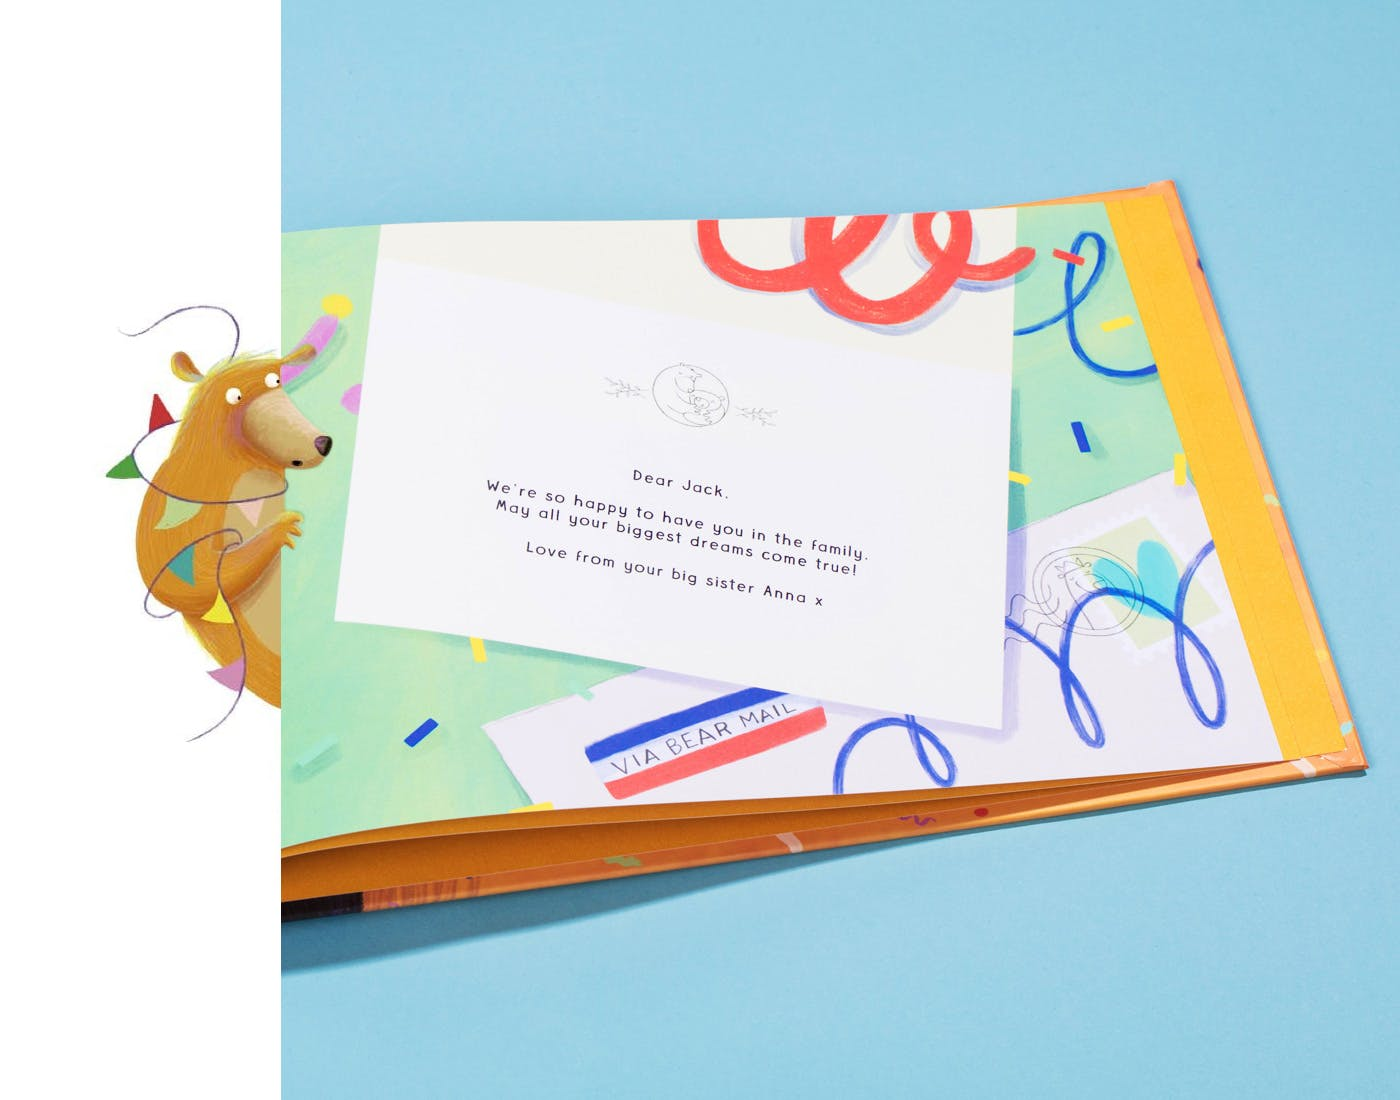 Image of the letter in the back of the book, to the littlest bear in your life.